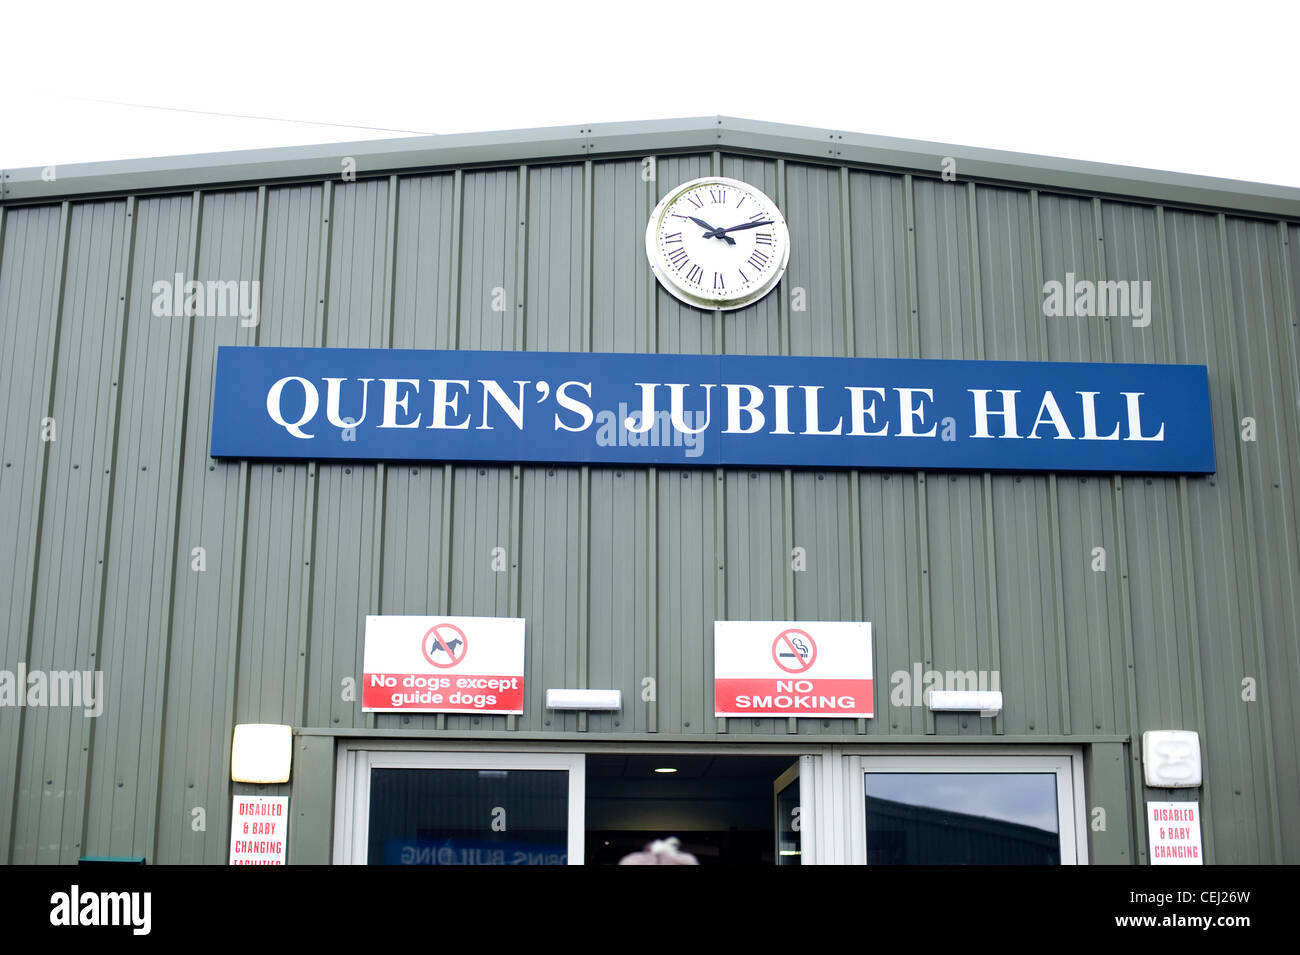 Queen's Jubilee Hall, South of England Showground, Ardingly antiques fair, West Sussex, England, UK - Stock Image